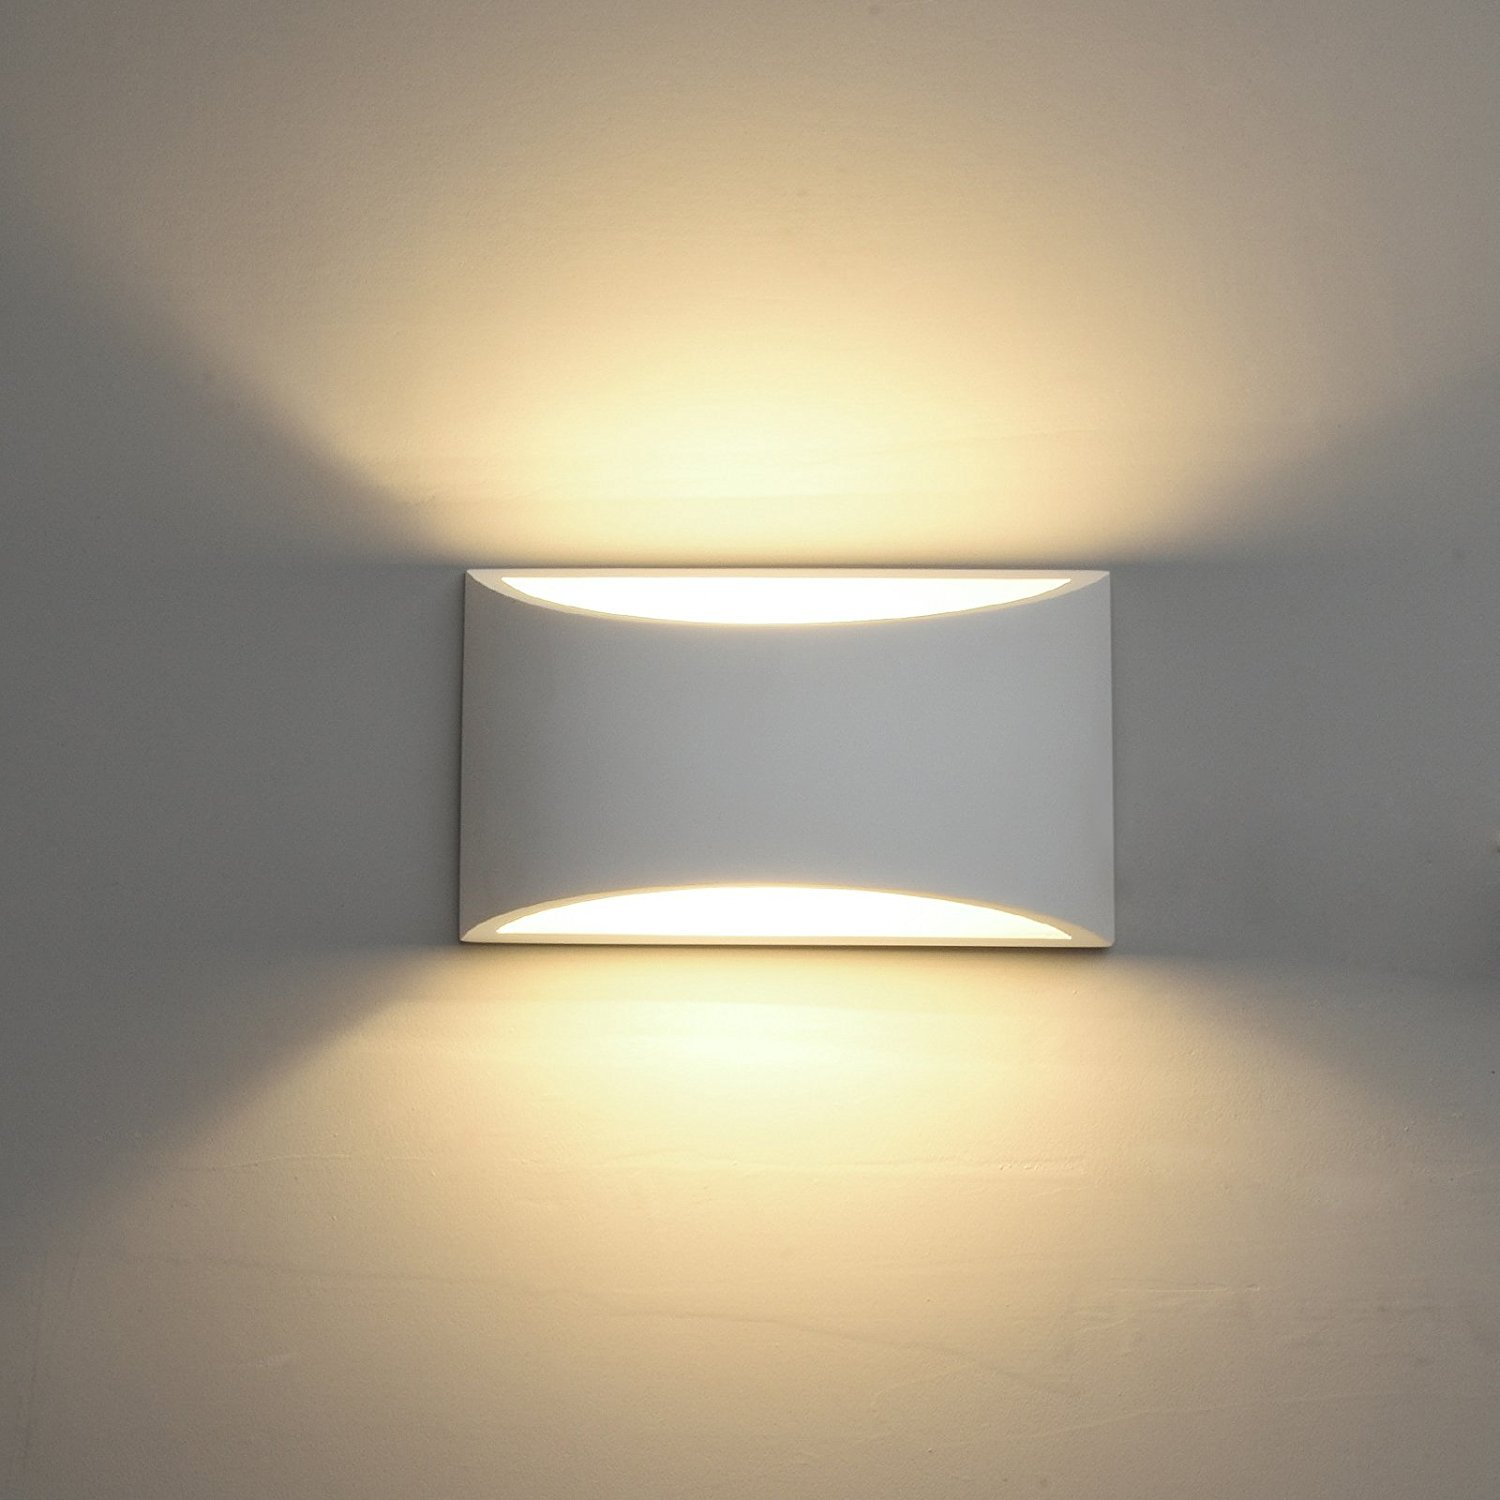 Interior wall lighting amazon deckey wall light led up and down indoor lamp uplighter downlighter warm white mozeypictures Gallery